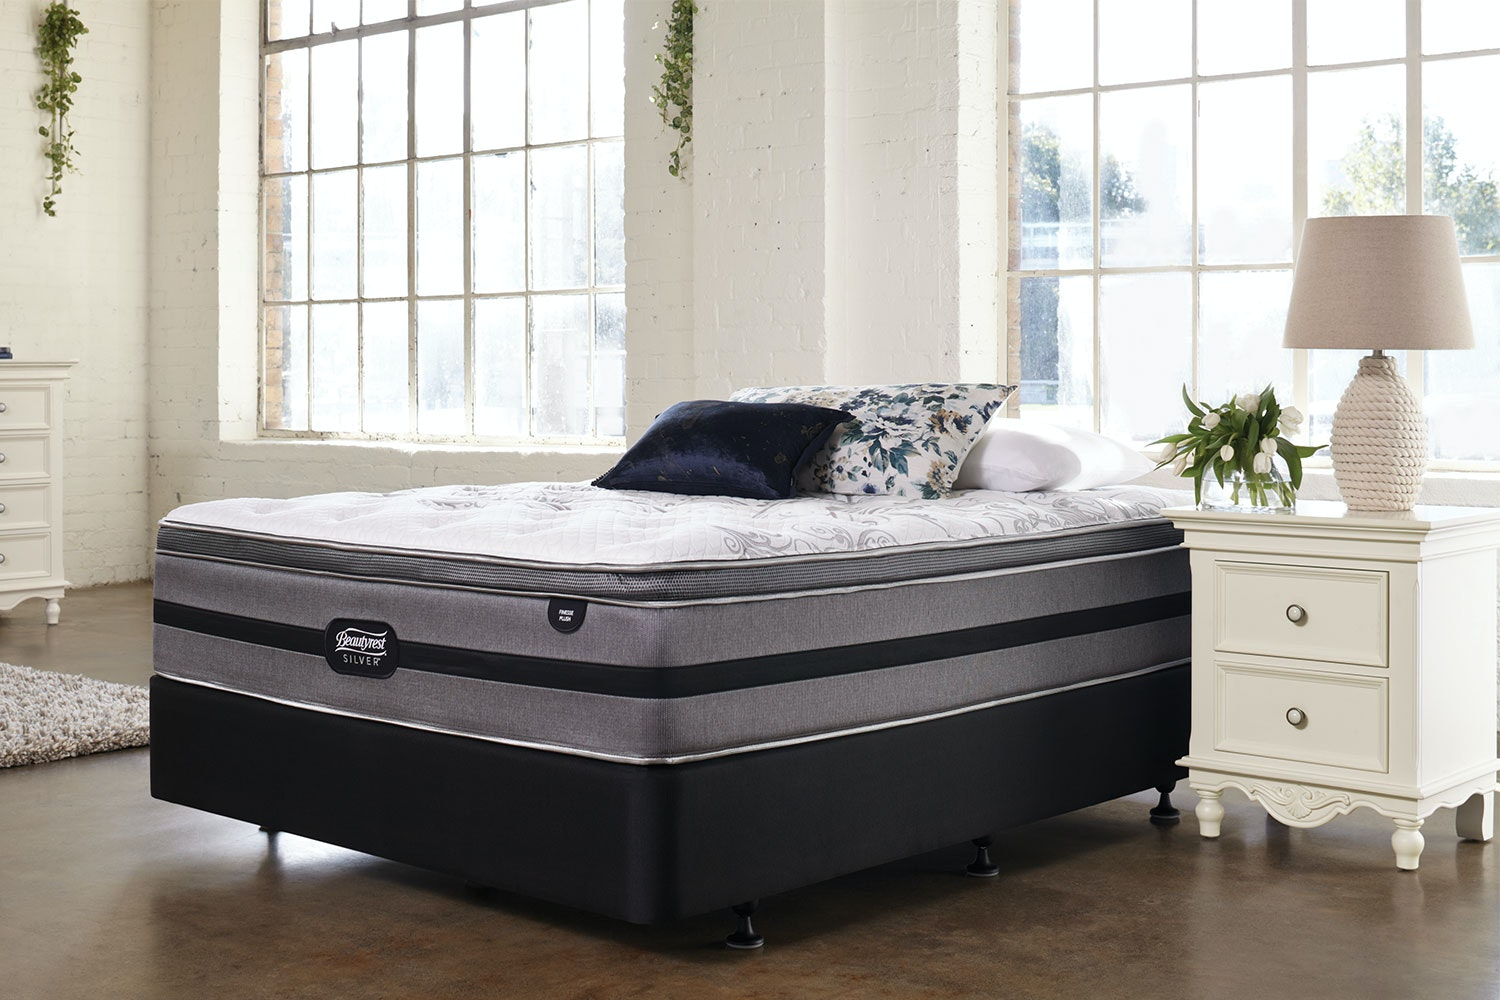 Finesse Plush King Single Bed by Beautyrest